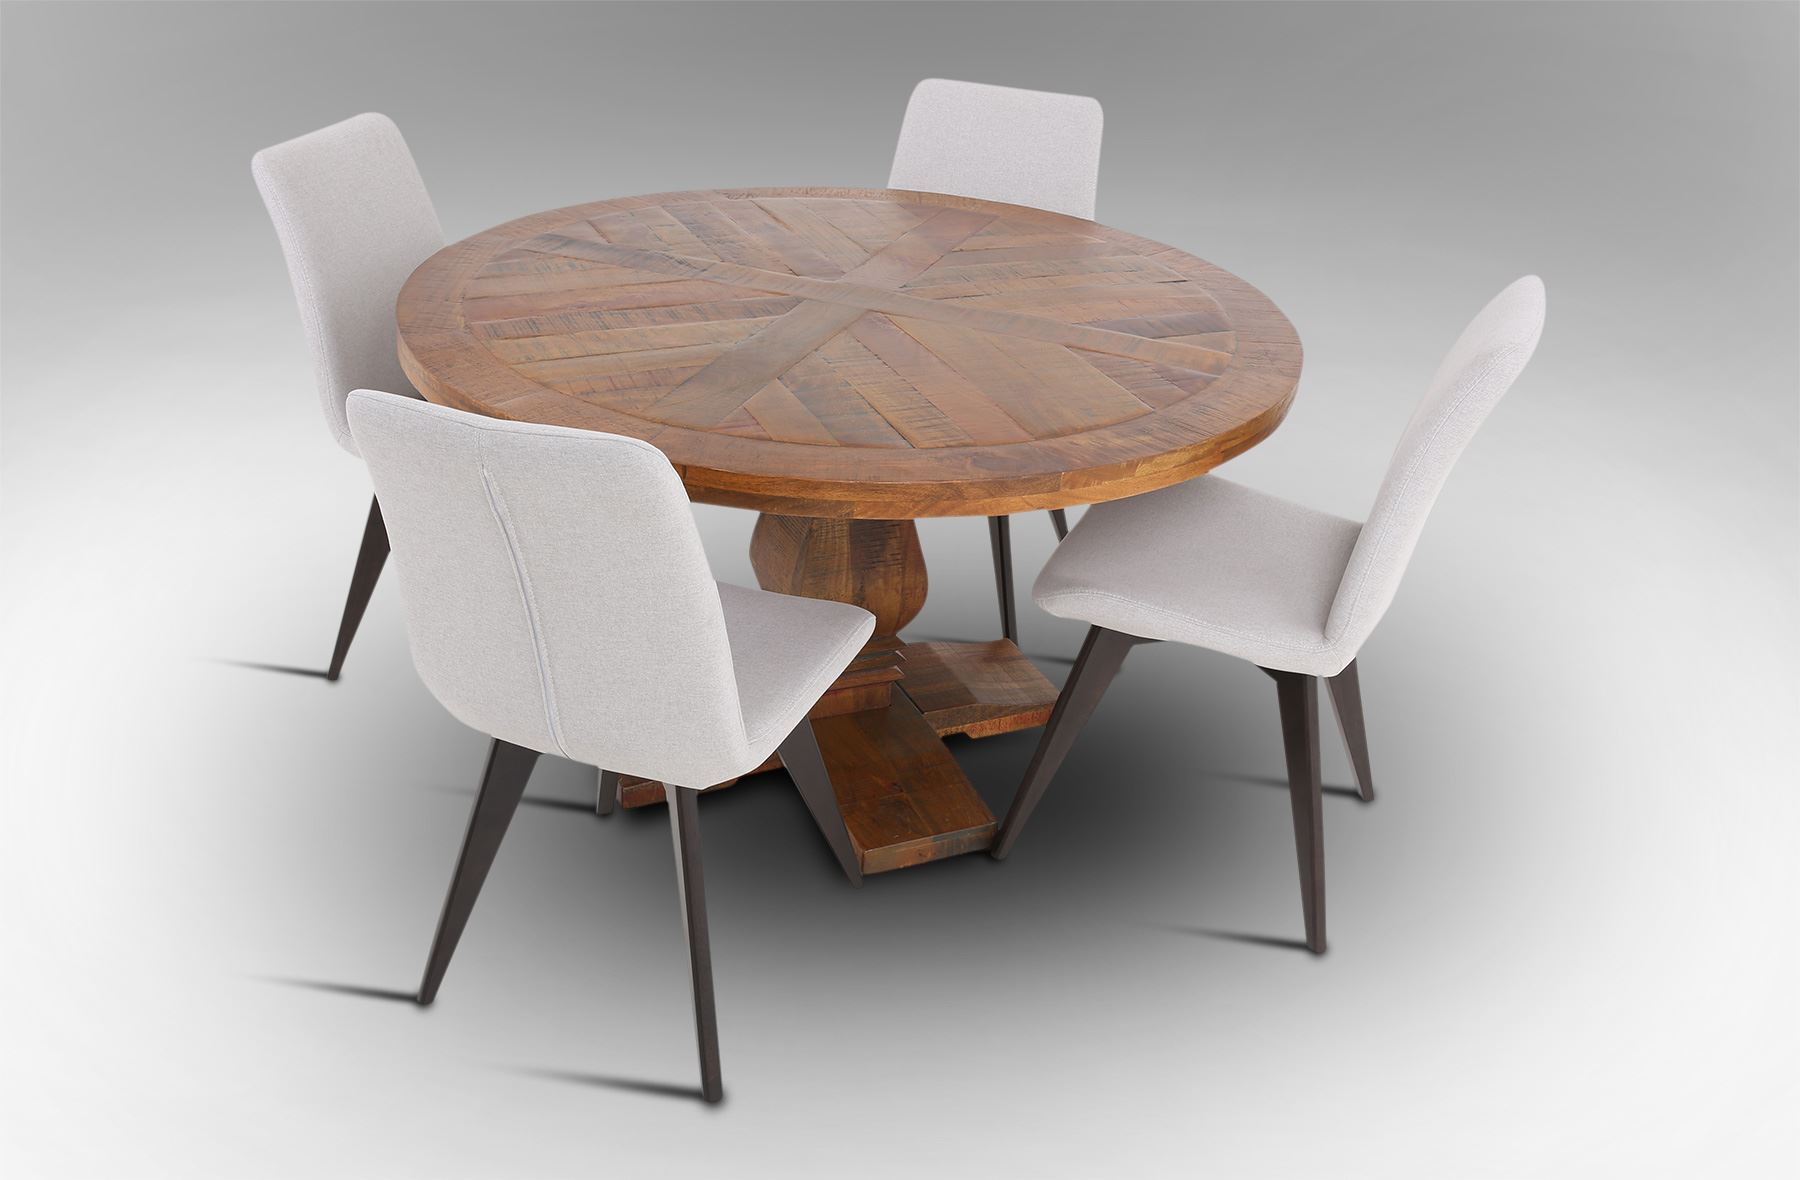 Rice furniture eden round dining table with 4 hilton - Dining table and fabric chairs ...